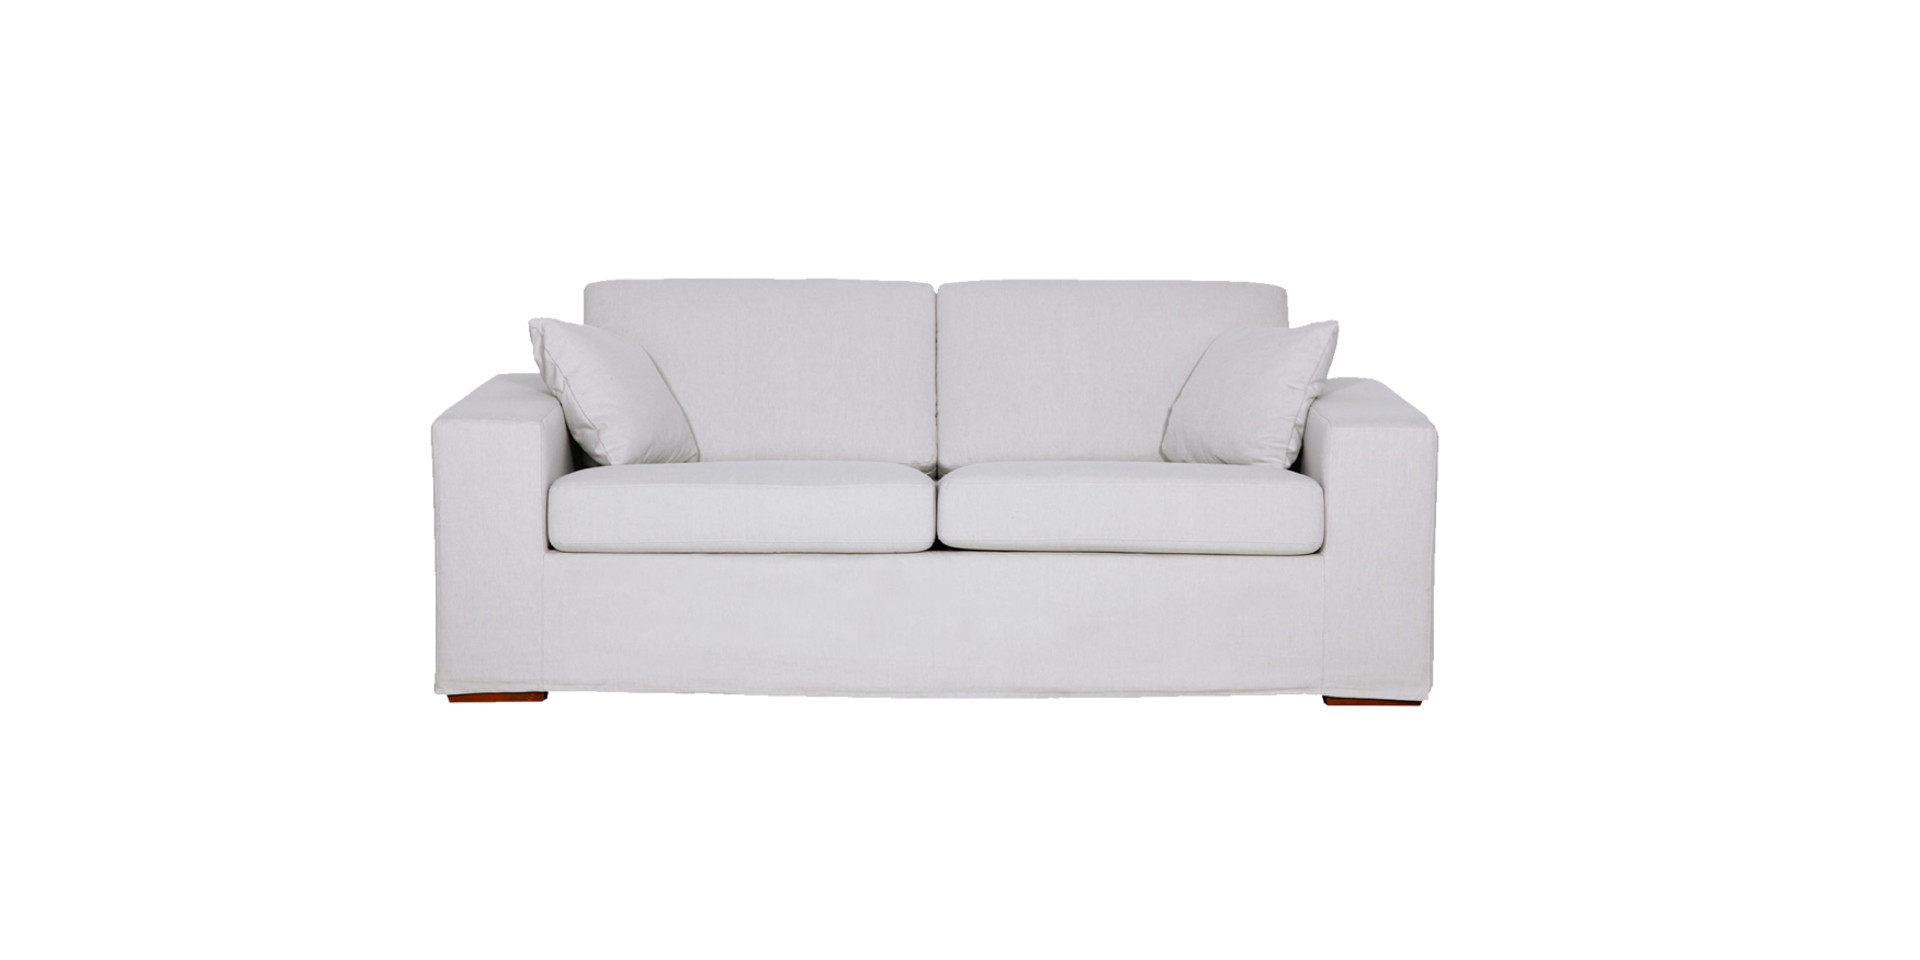 sits-antares-canape-sofa_bed3_caleido3790_light_beige_1_0